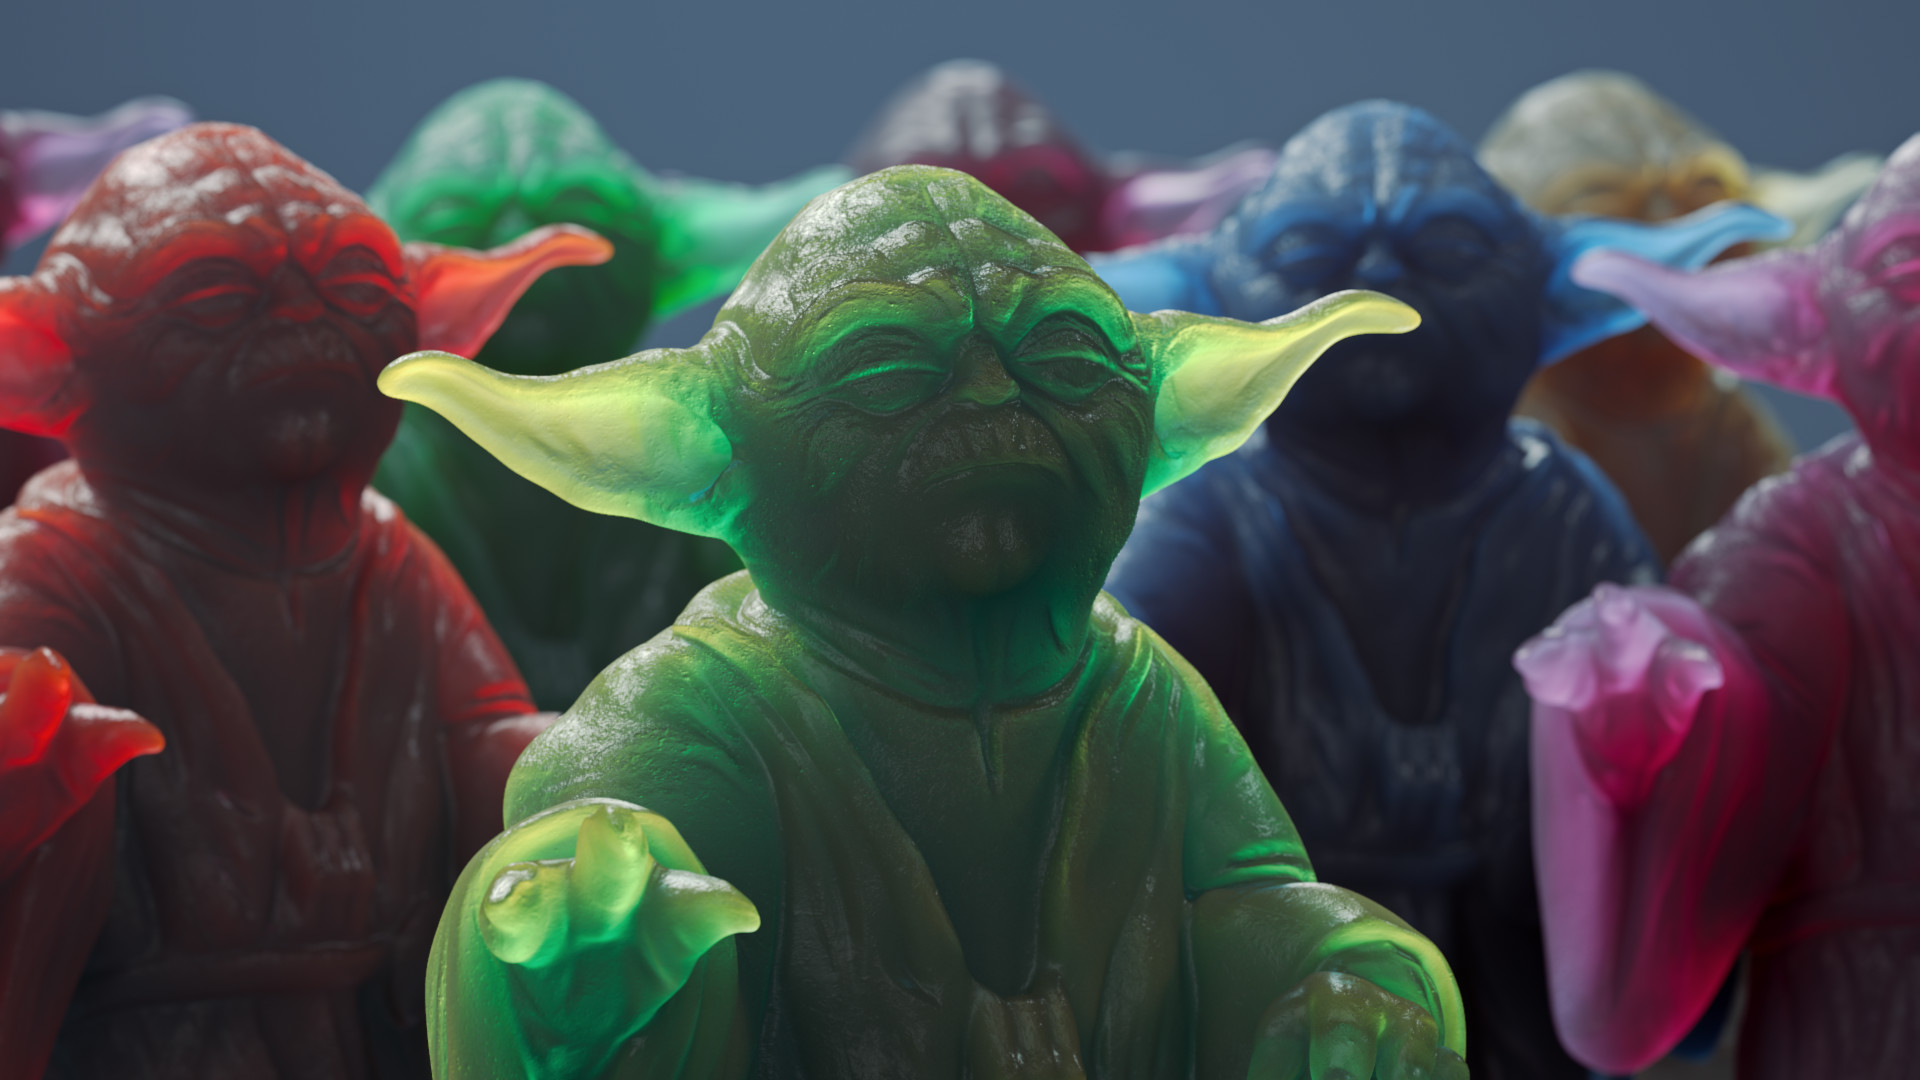 ArtStation - Yoda SSS Figurine Cinema 4D Arnold, Tod Ryan